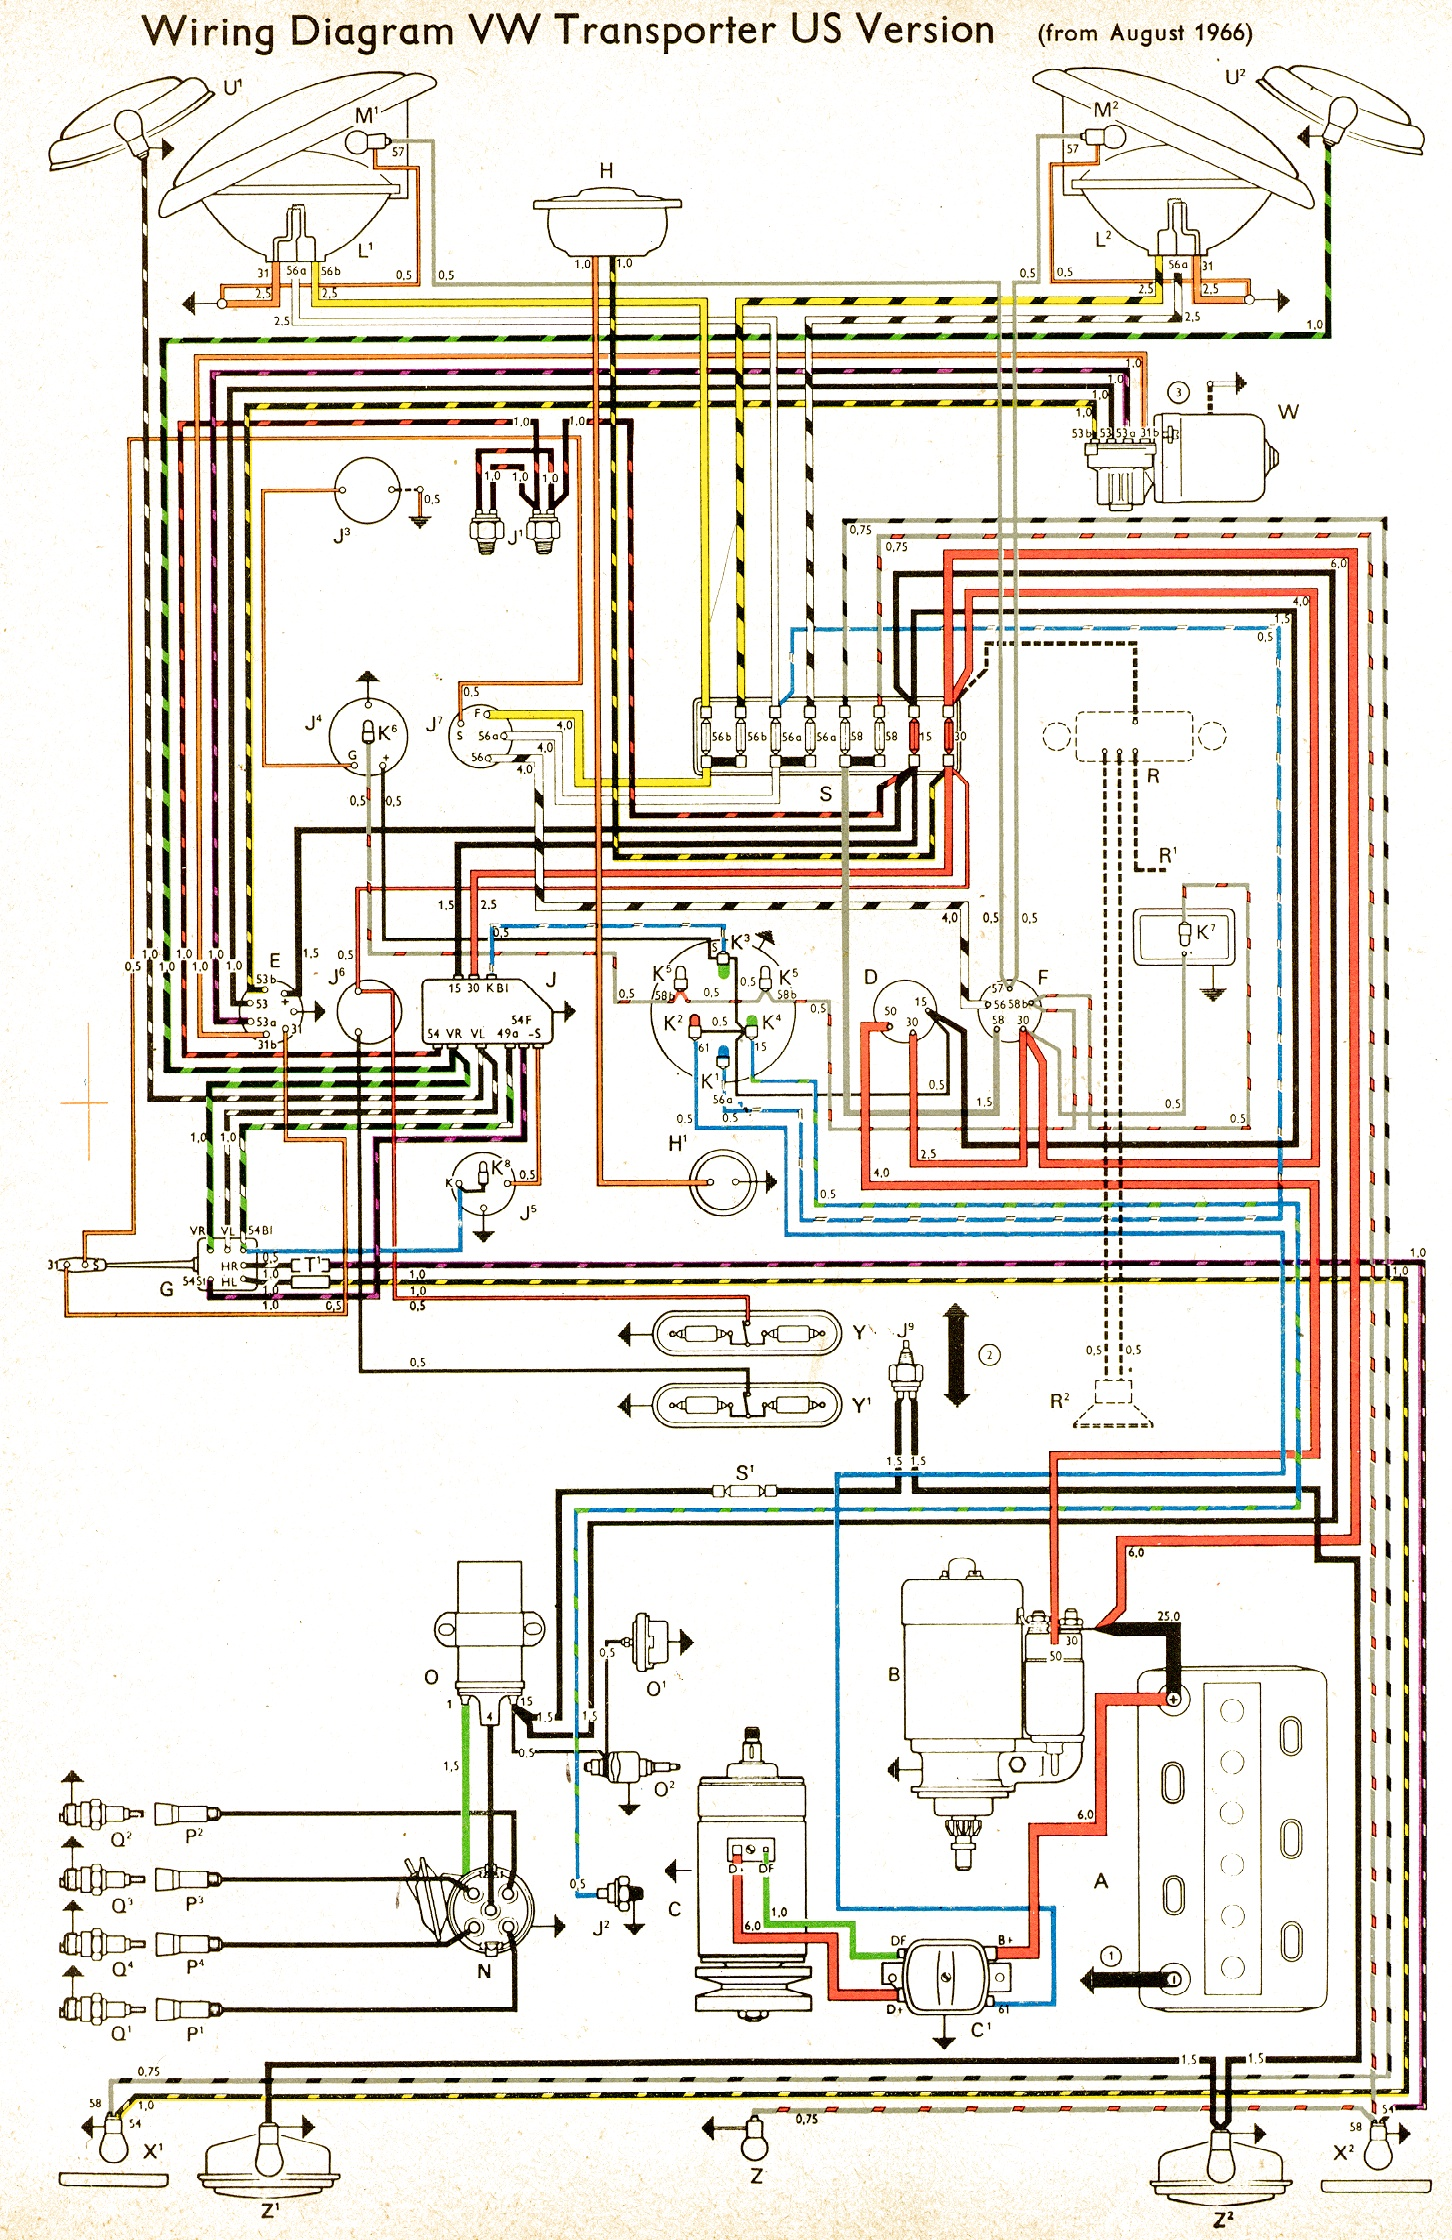 66 Vw Bug Wire Diagram Of Data 1968 Chrysler 300 Wiring Vintagebus Com Bus And Other Diagrams Rh 1980